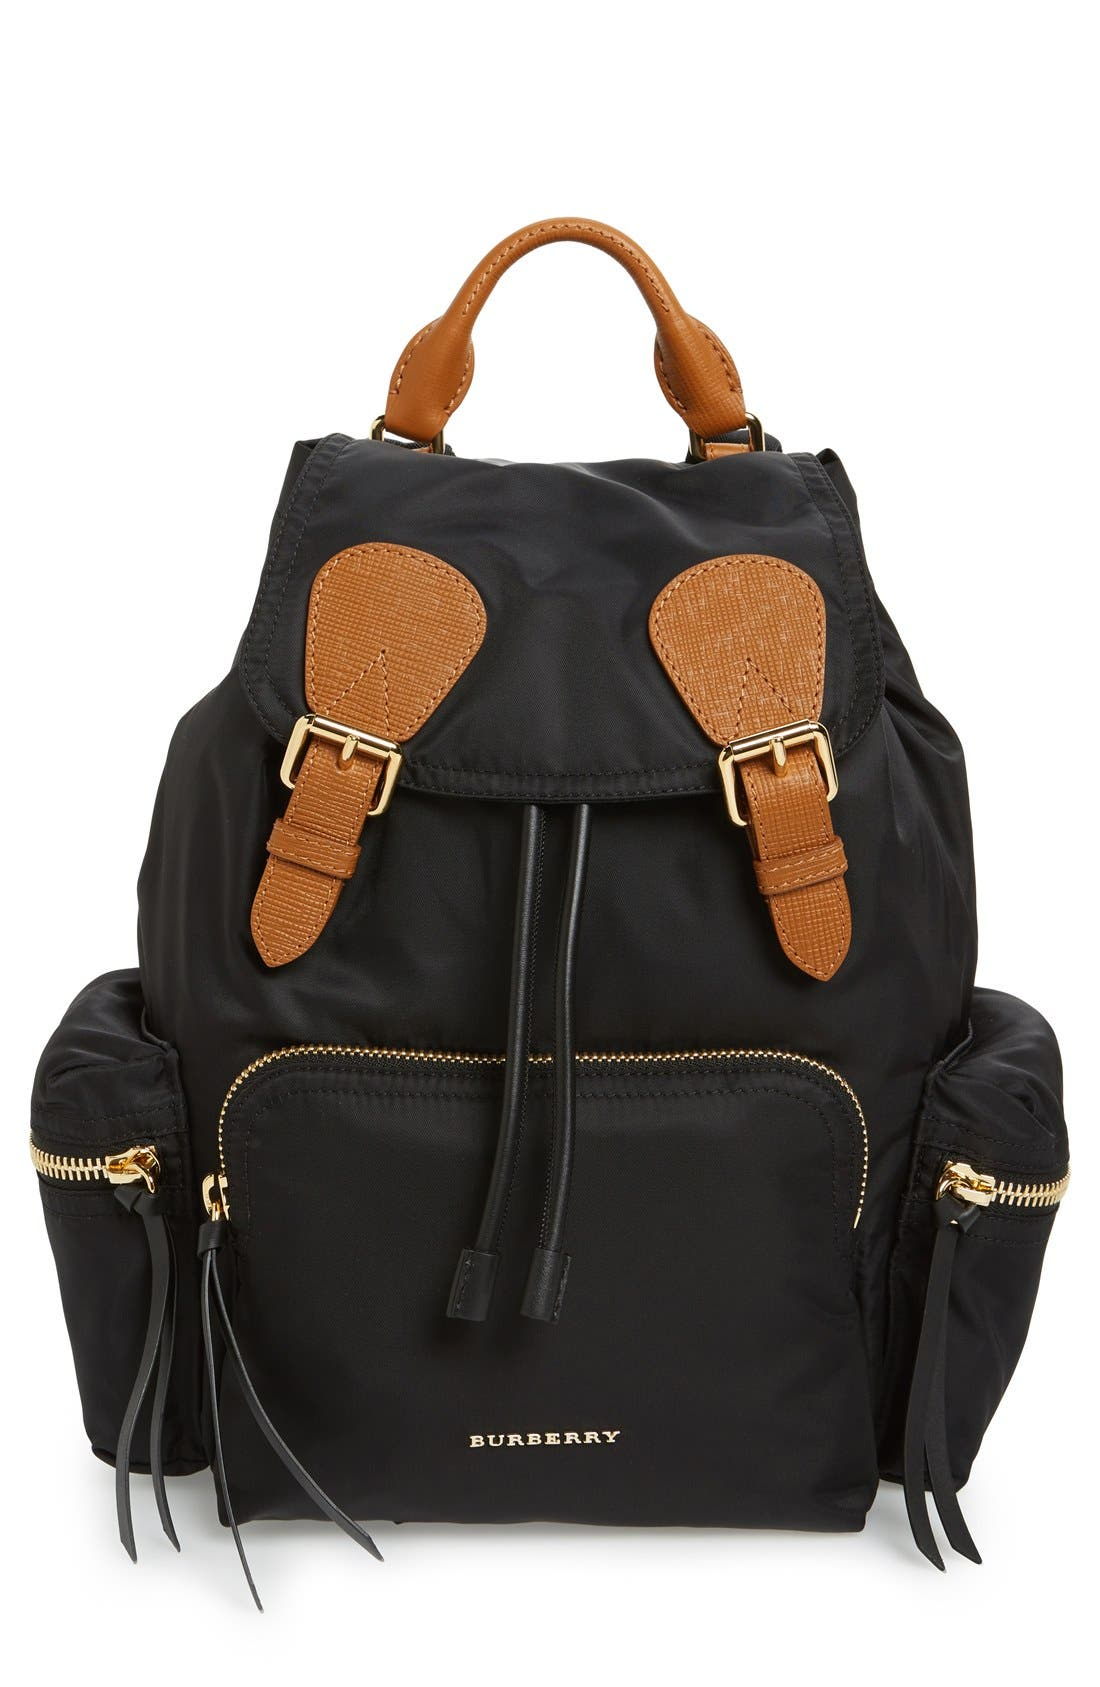 burberry backpack price